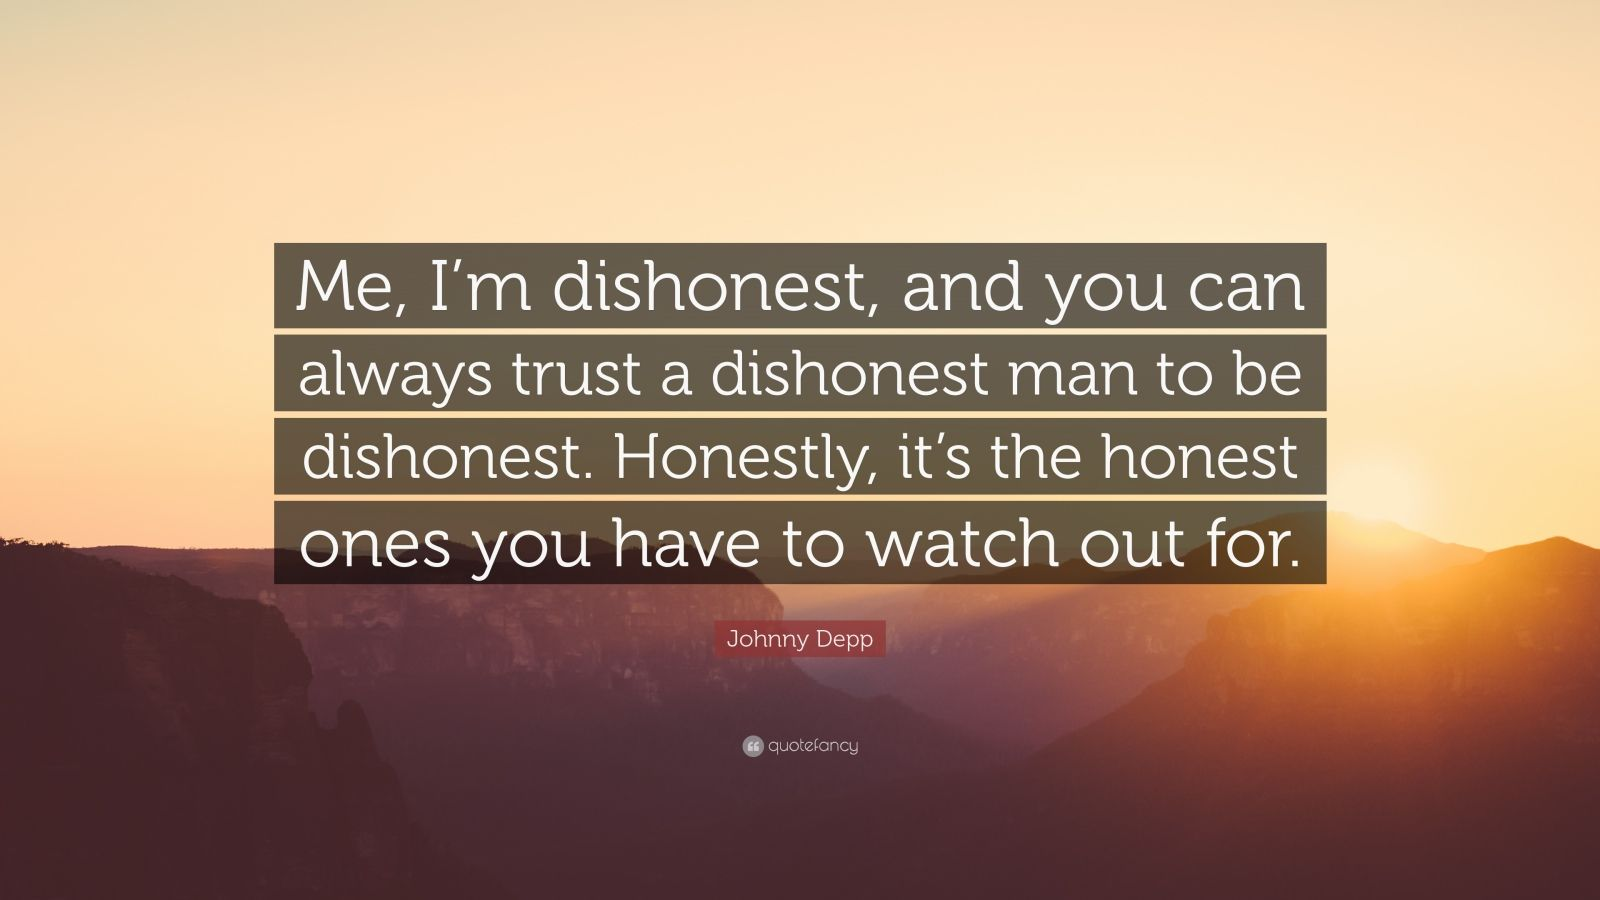 "Johnny Depp Quote: ""Me, I'm dishonest, and you can always trust a dishonest man to be dishonest. Honestly, it's the honest ones you have to watch out for."""